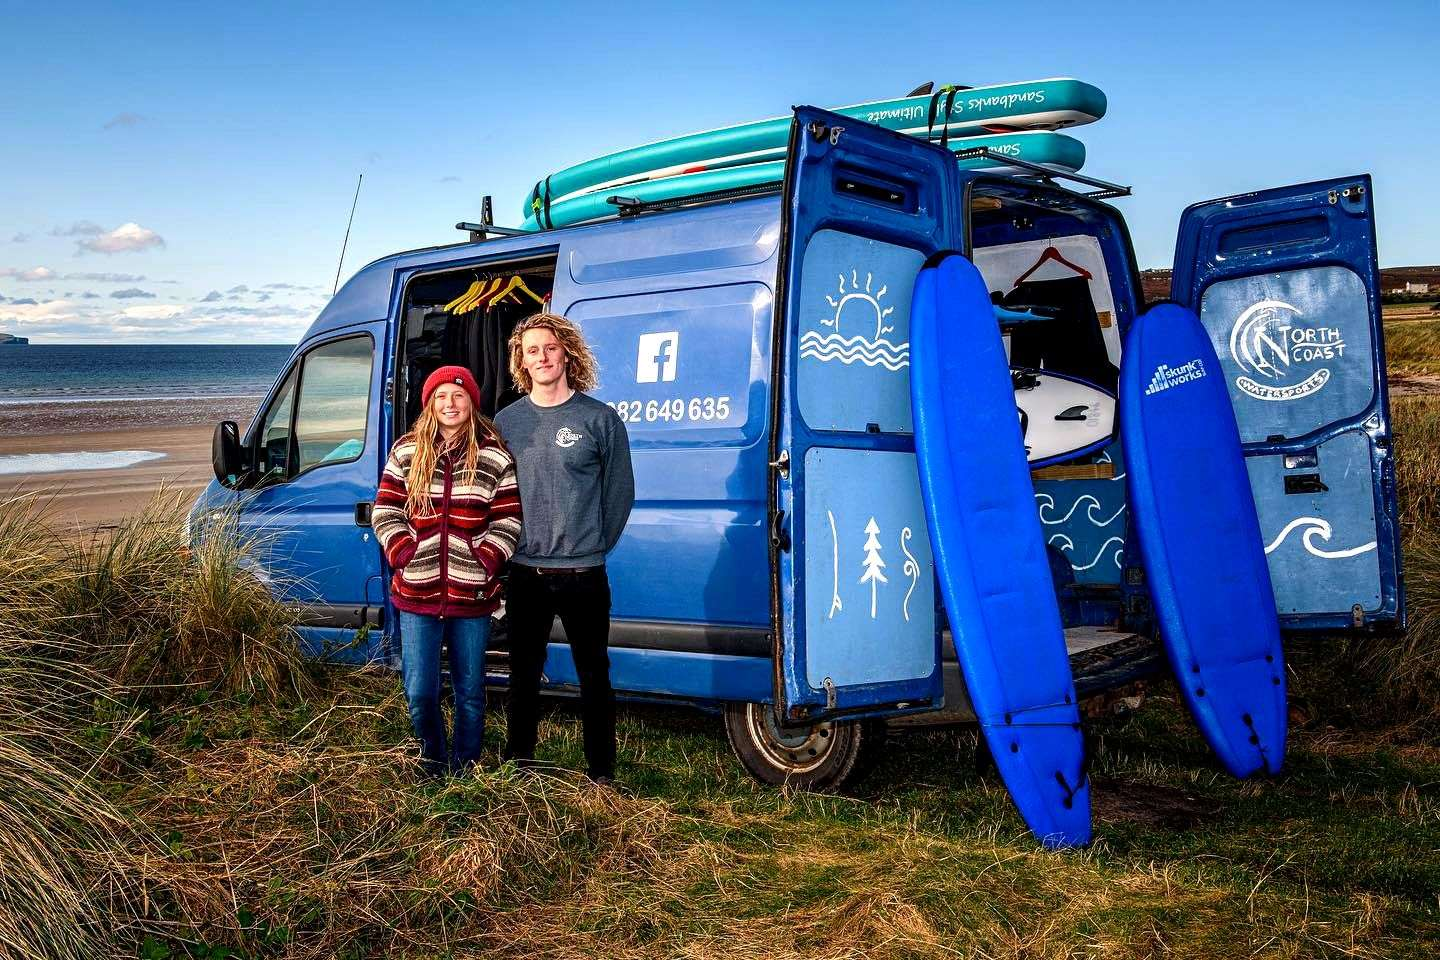 Iona McLachlan and Finn MacDonald of North Coast Watersports who will be providing the lessons for the Wave Water Wellness programme.